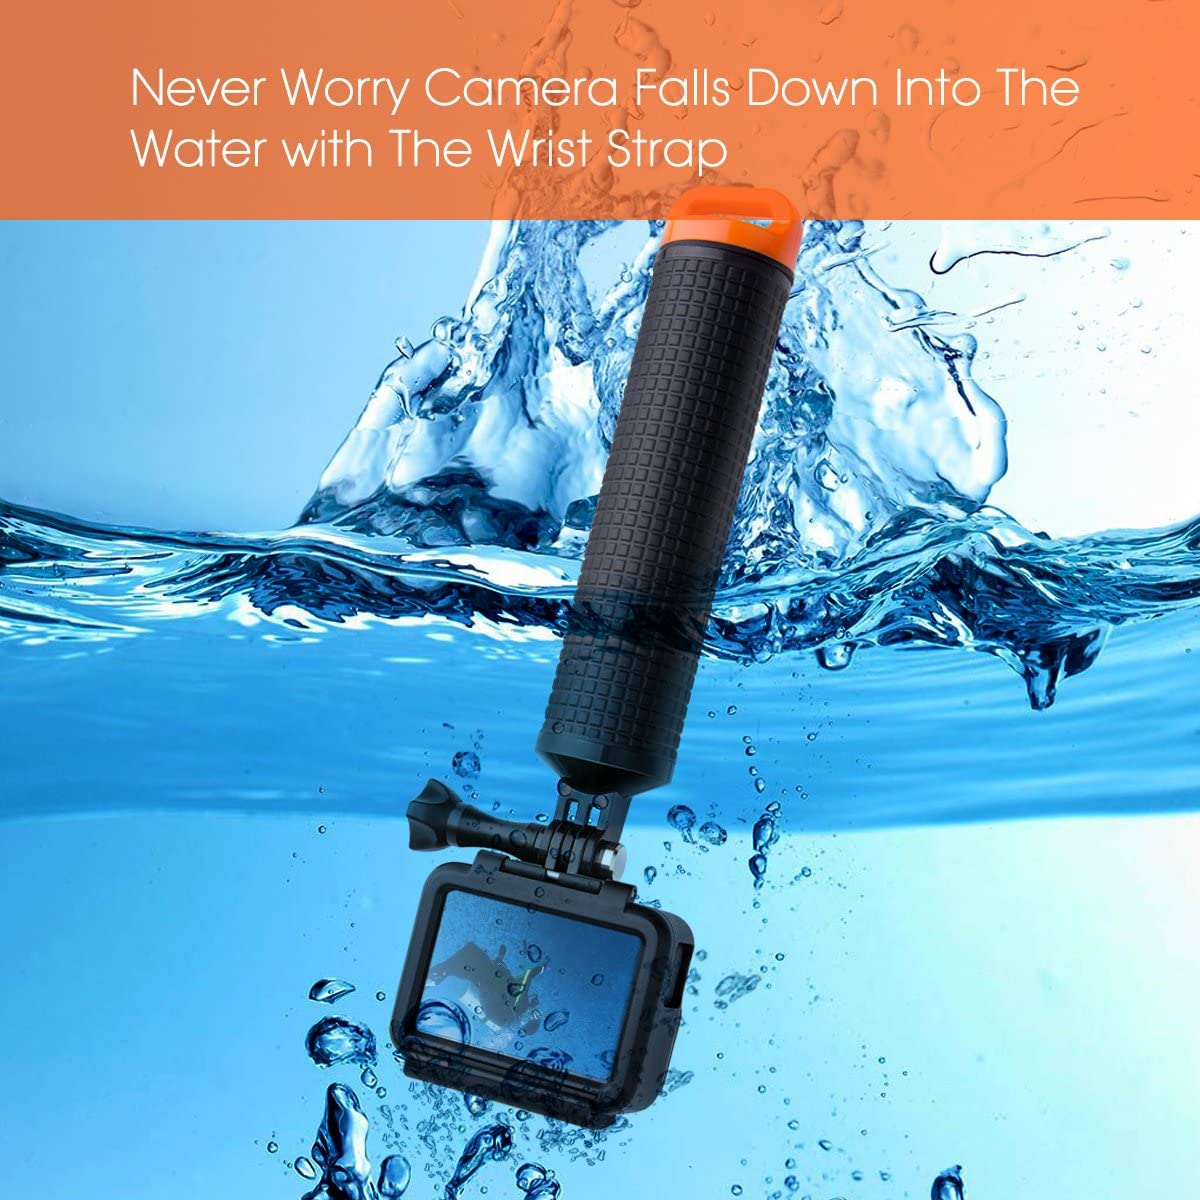 Luxebell Waterproof Floating Hand Grip, Pole Mount for Gopro Hero 8 7 6 5 Max Session 4 3+, Handle Mount Accessories for AKASO EK7000 V50 Pro Brave 4 Dragon Crosstour Campark DJI OSMO Action Camera : Camera & Photo